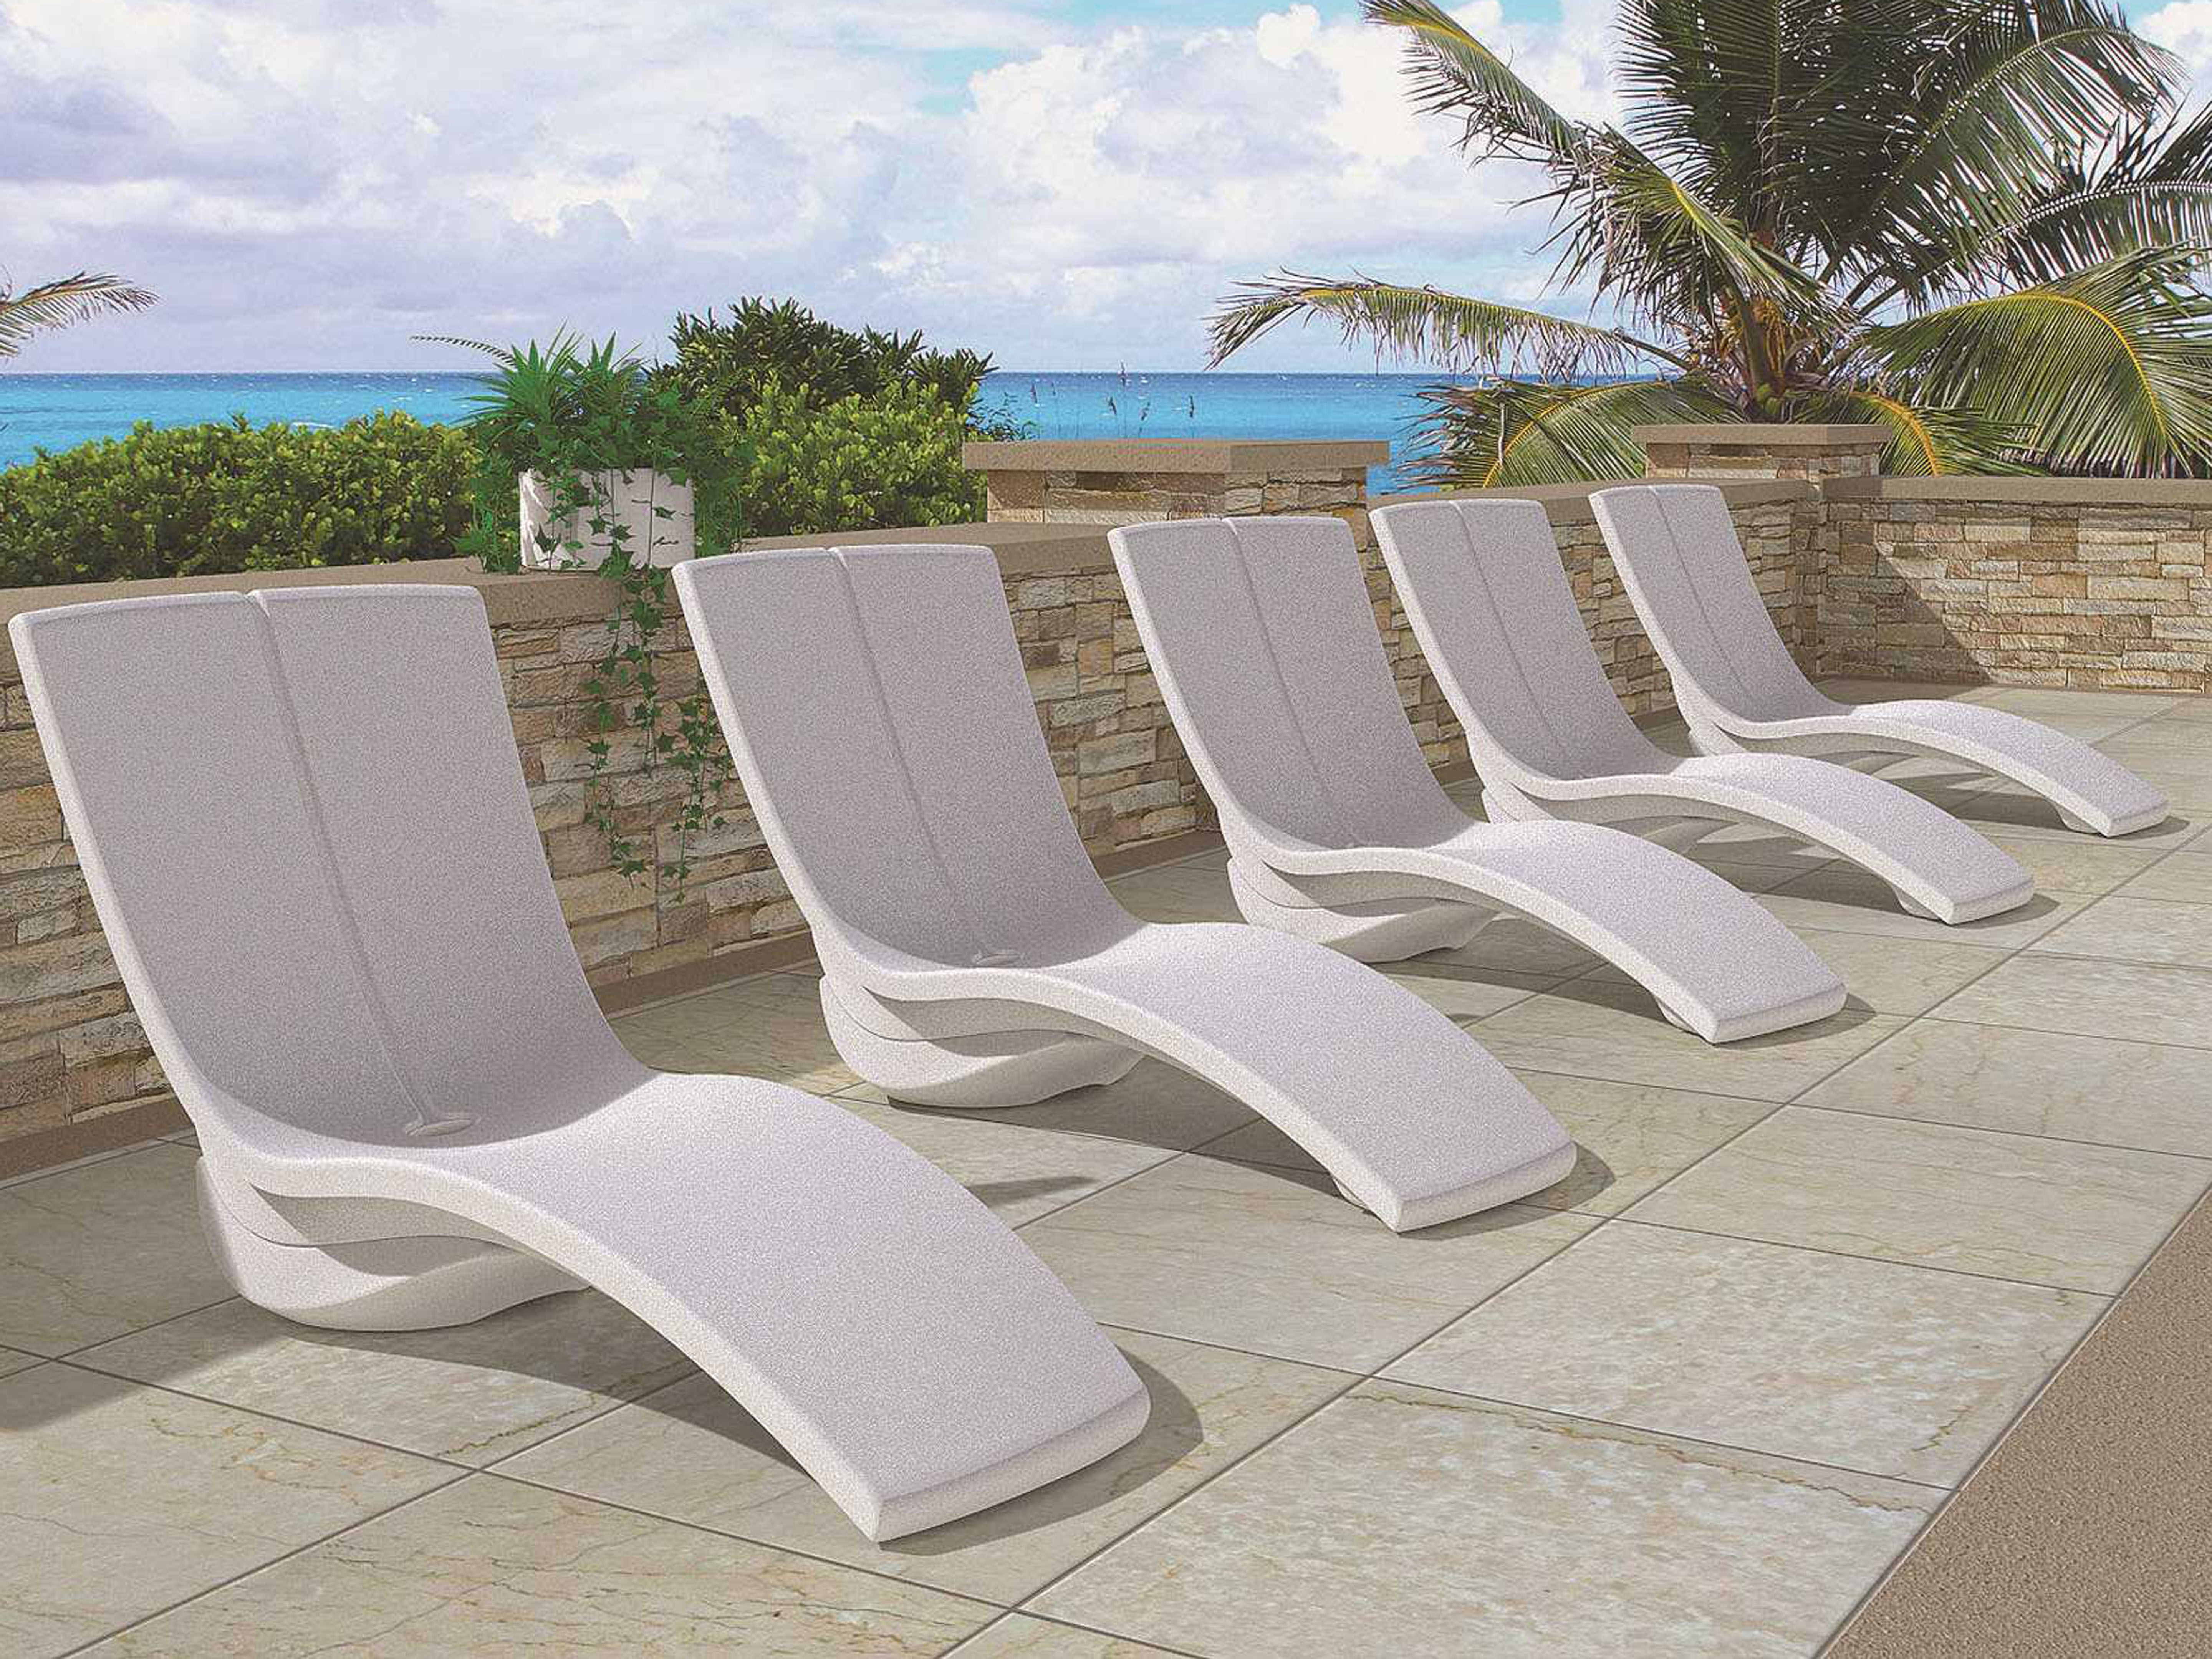 Tropitone Curve Recycled Plastic Rotoform3 Chaise Lounge With In Famous Tropitone Chaise Lounges (View 9 of 15)